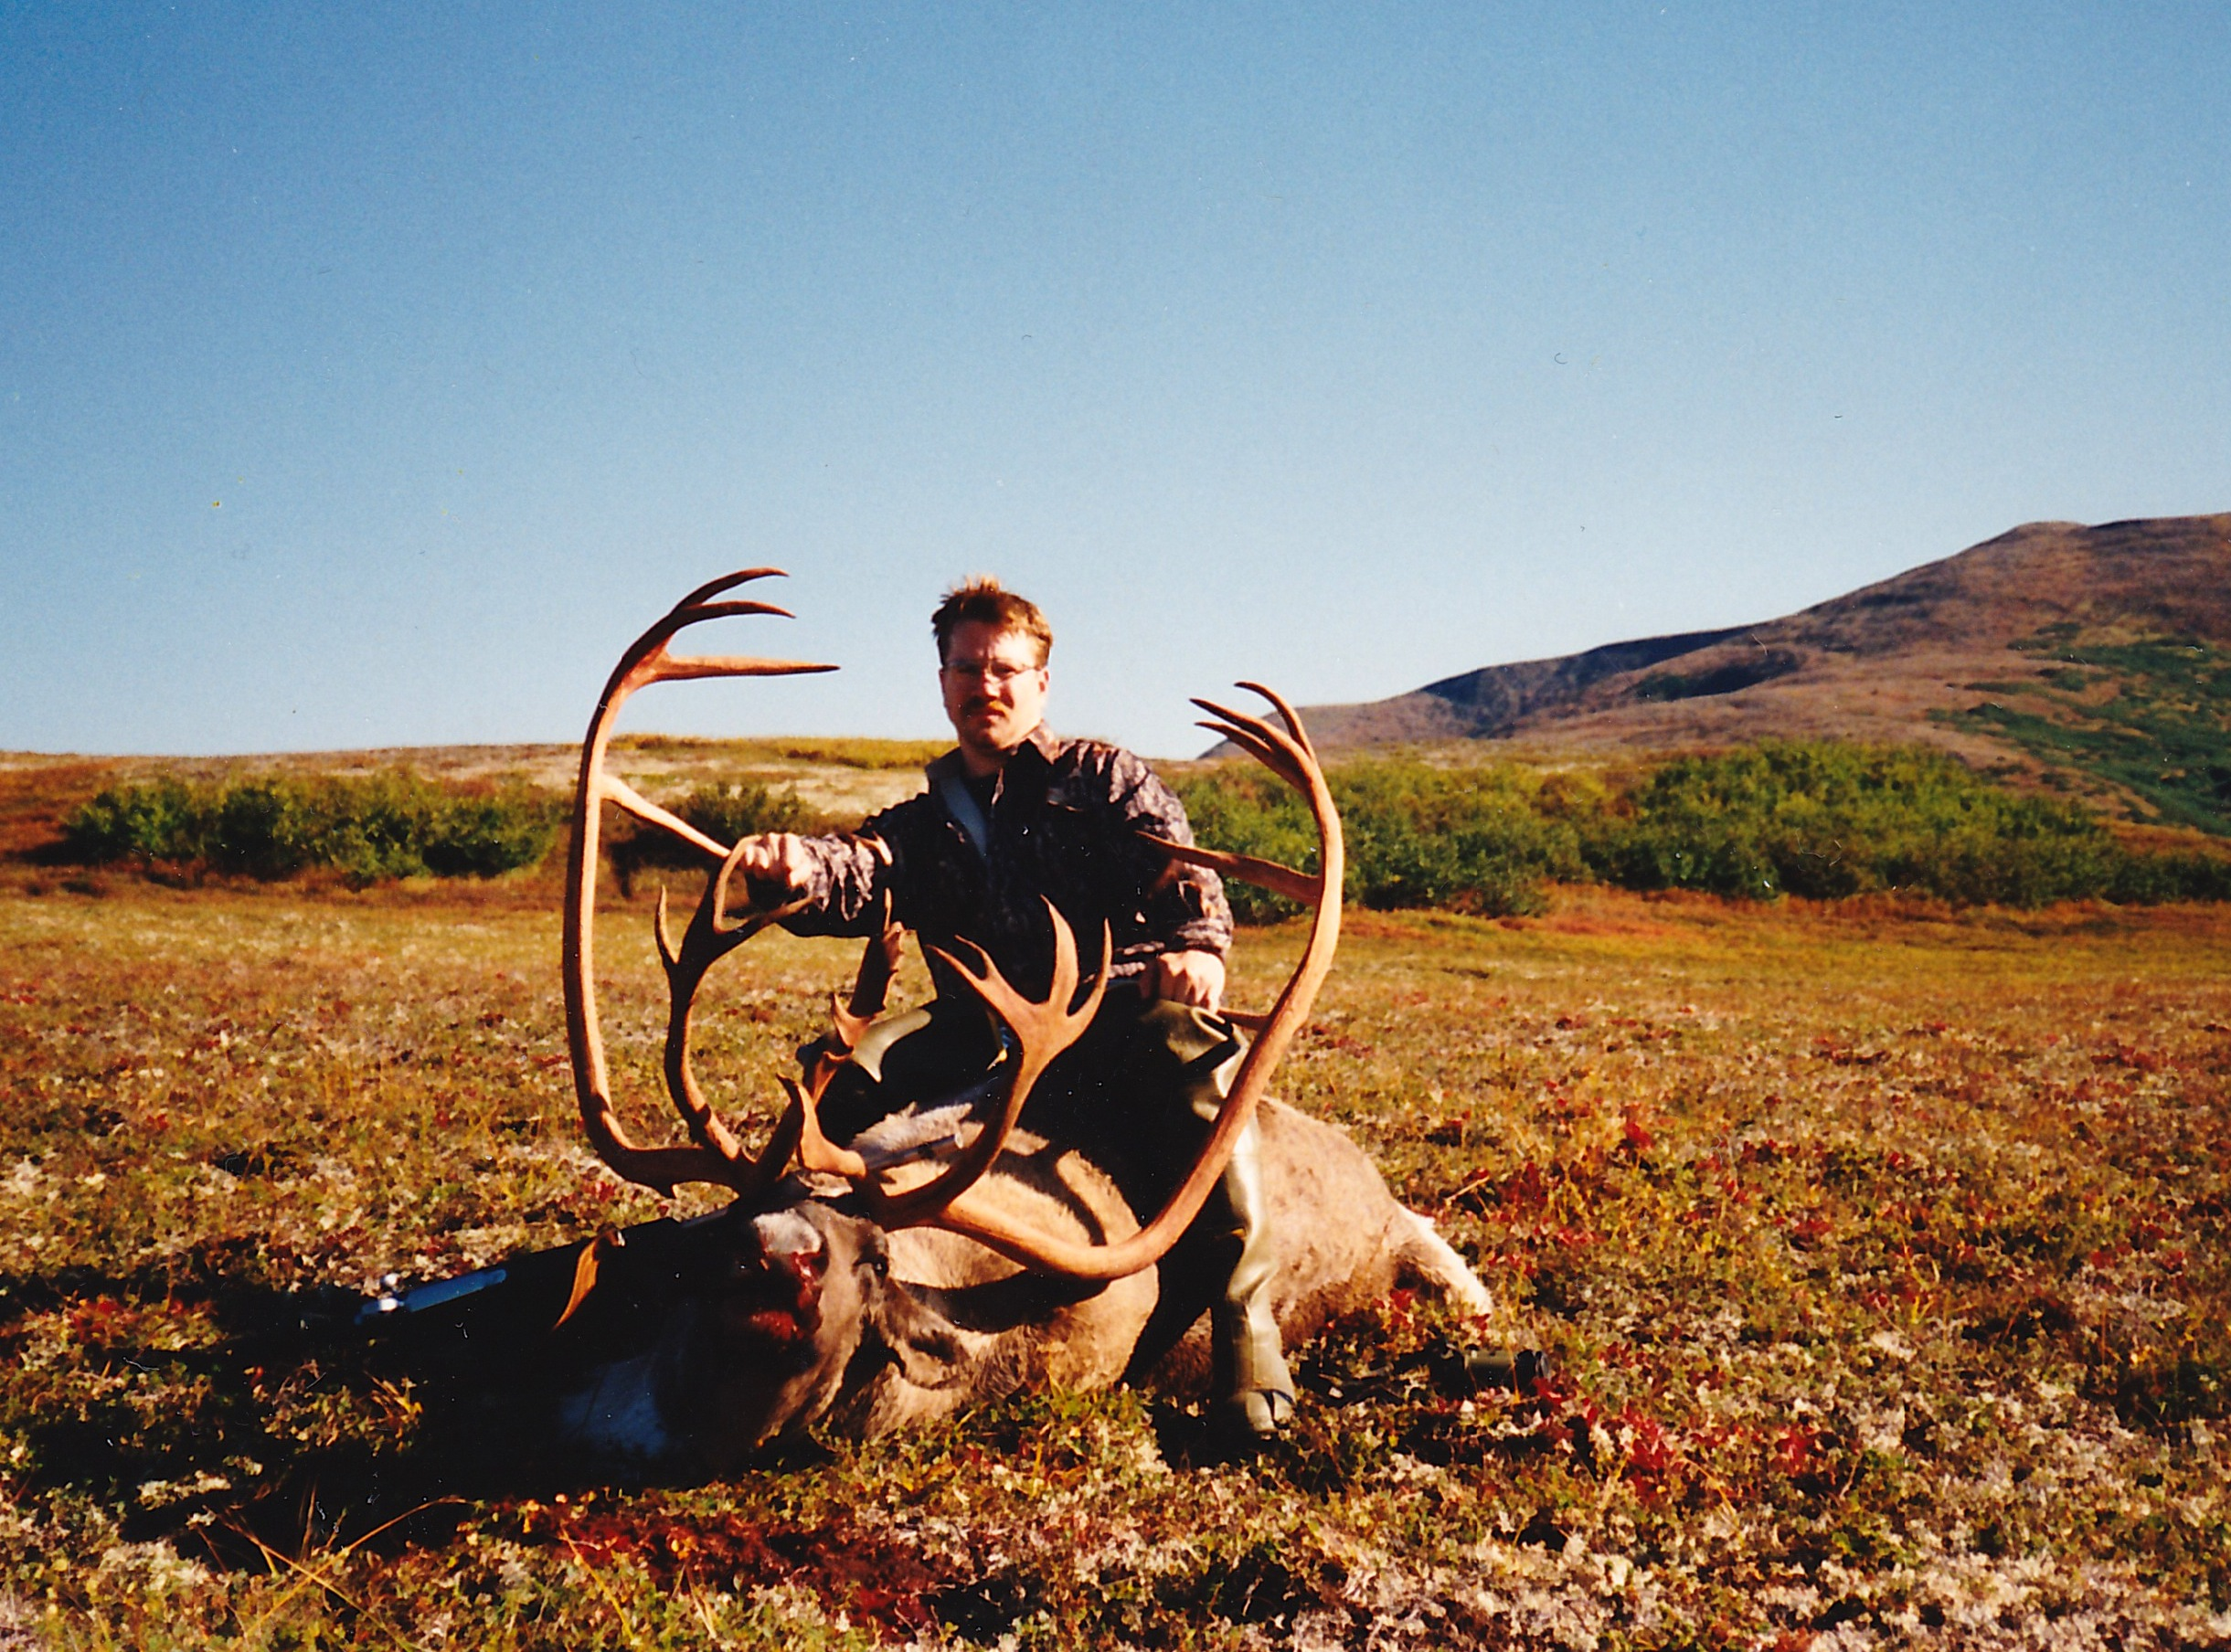 Dave Nelsen's second B&C caribou scoring 402 B&C. Dave's guide was Mark Confer.